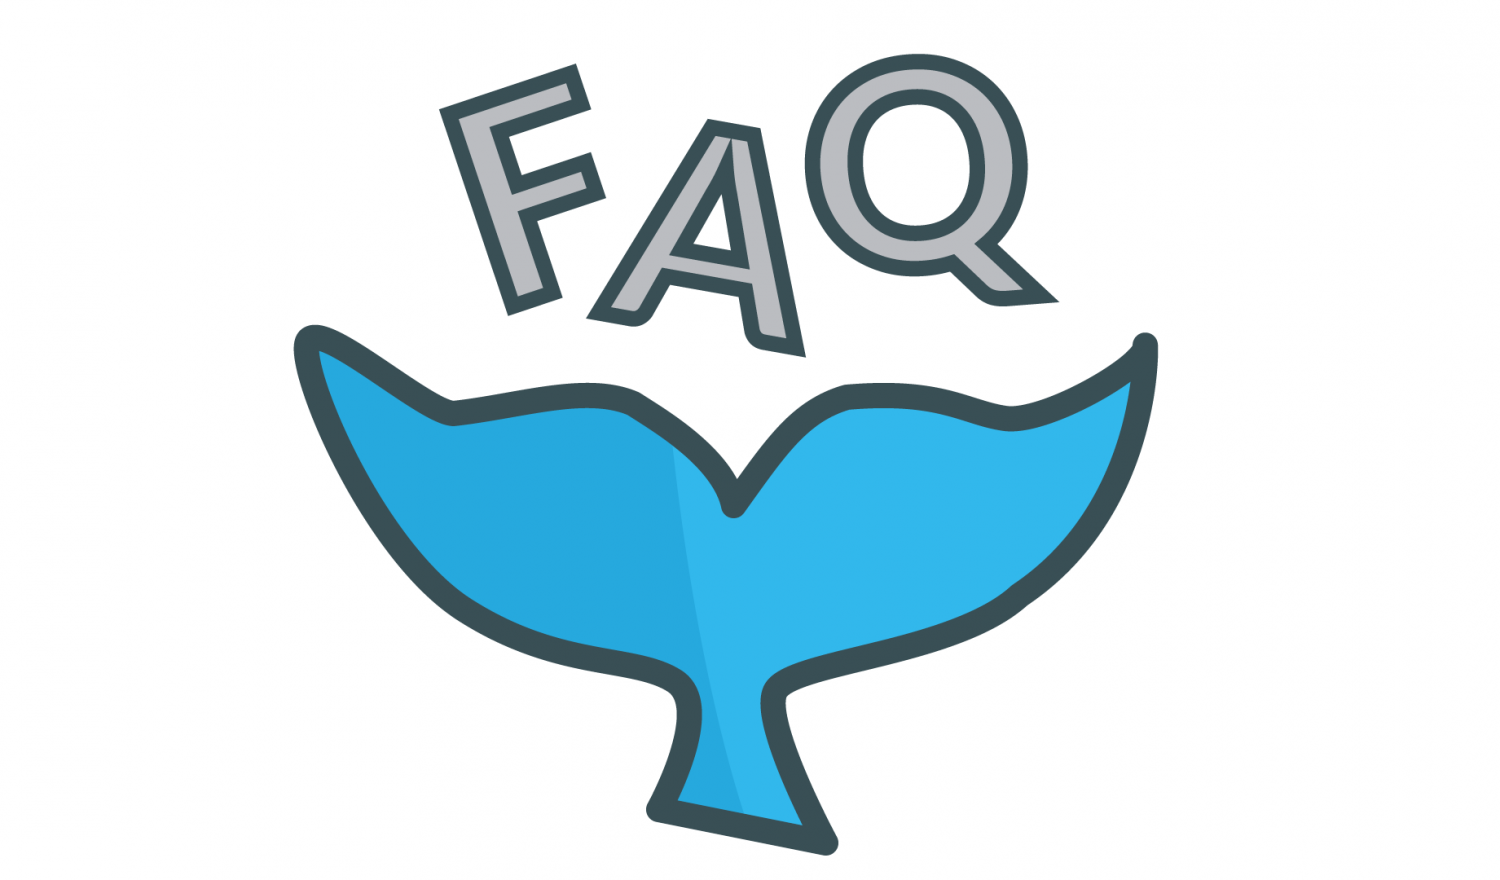 OpenFaaS logo juggling the letters F A Q